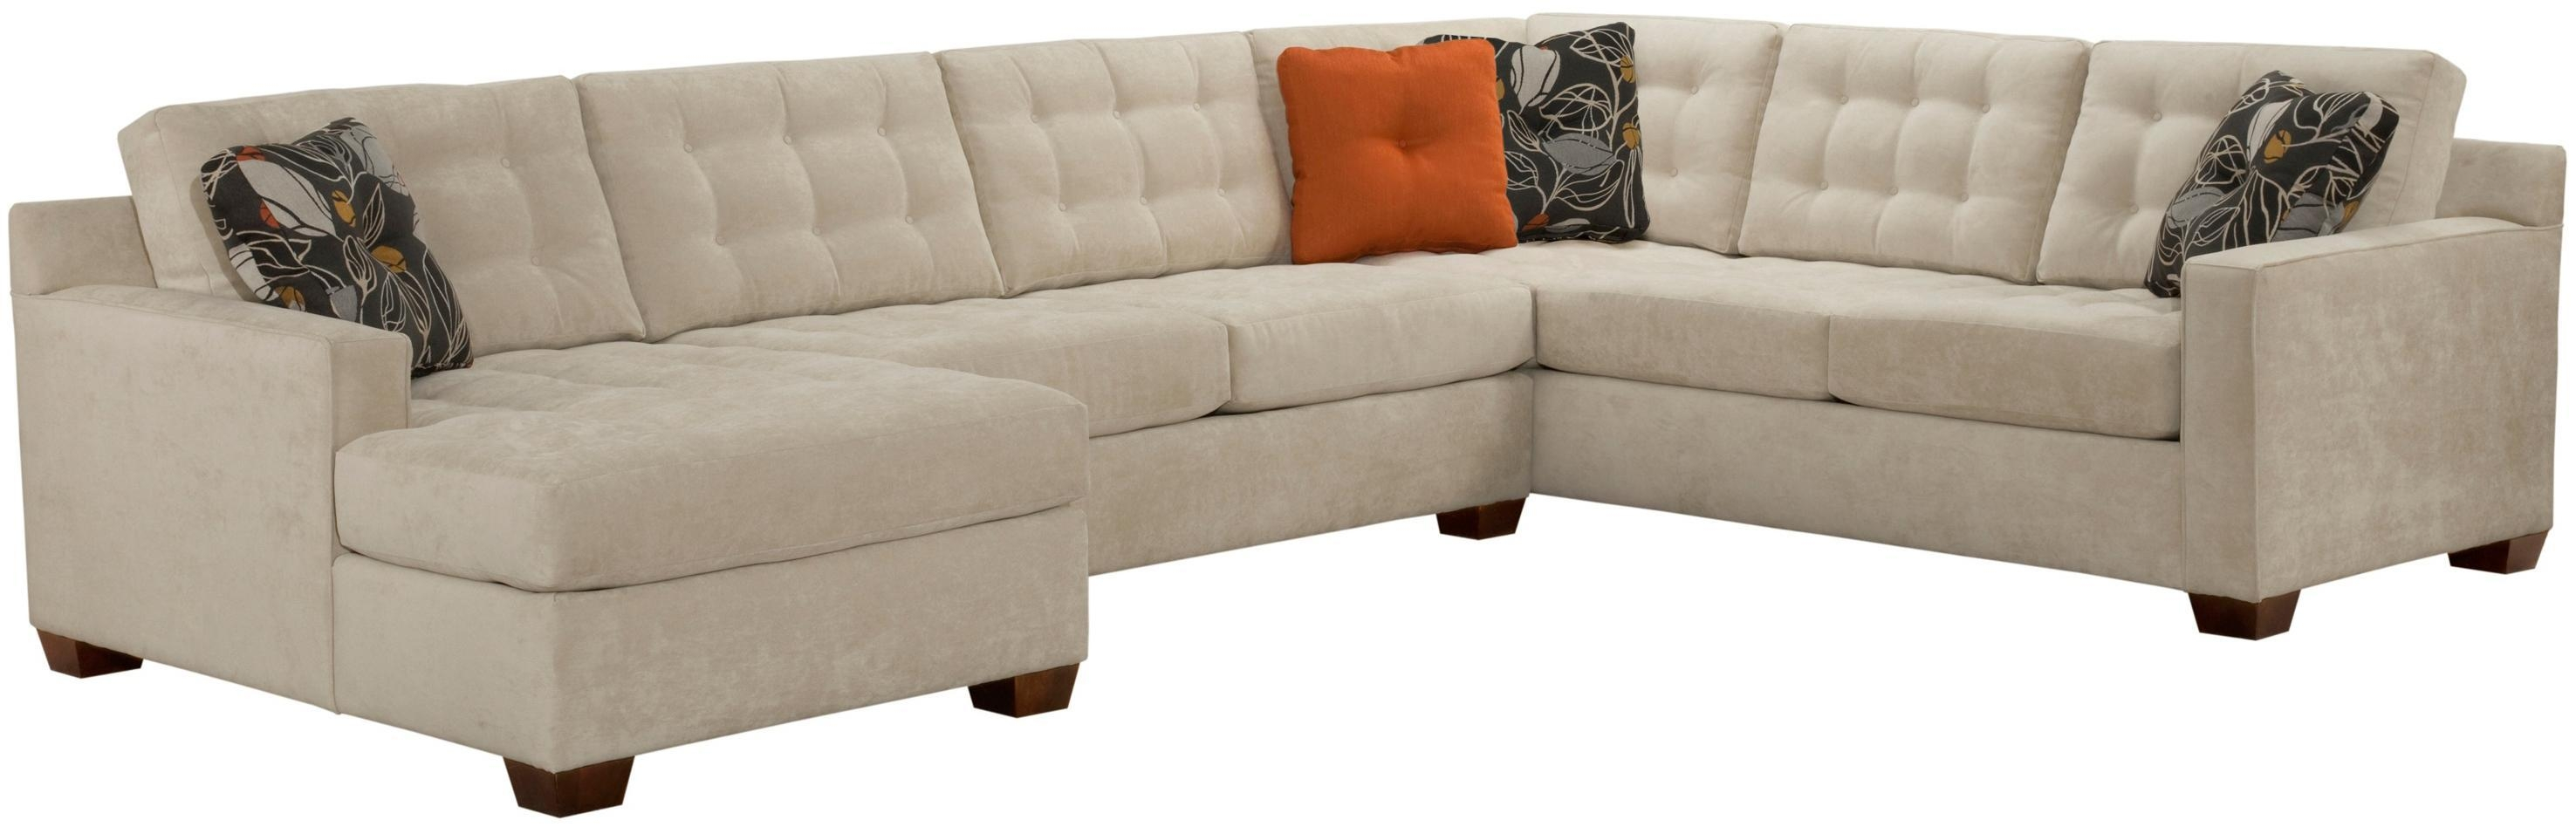 Broyhill Furniture Tribeca Contemporary Sectional Sofa With Left Pertaining To Broyhill Sectional Sofas (View 7 of 15)